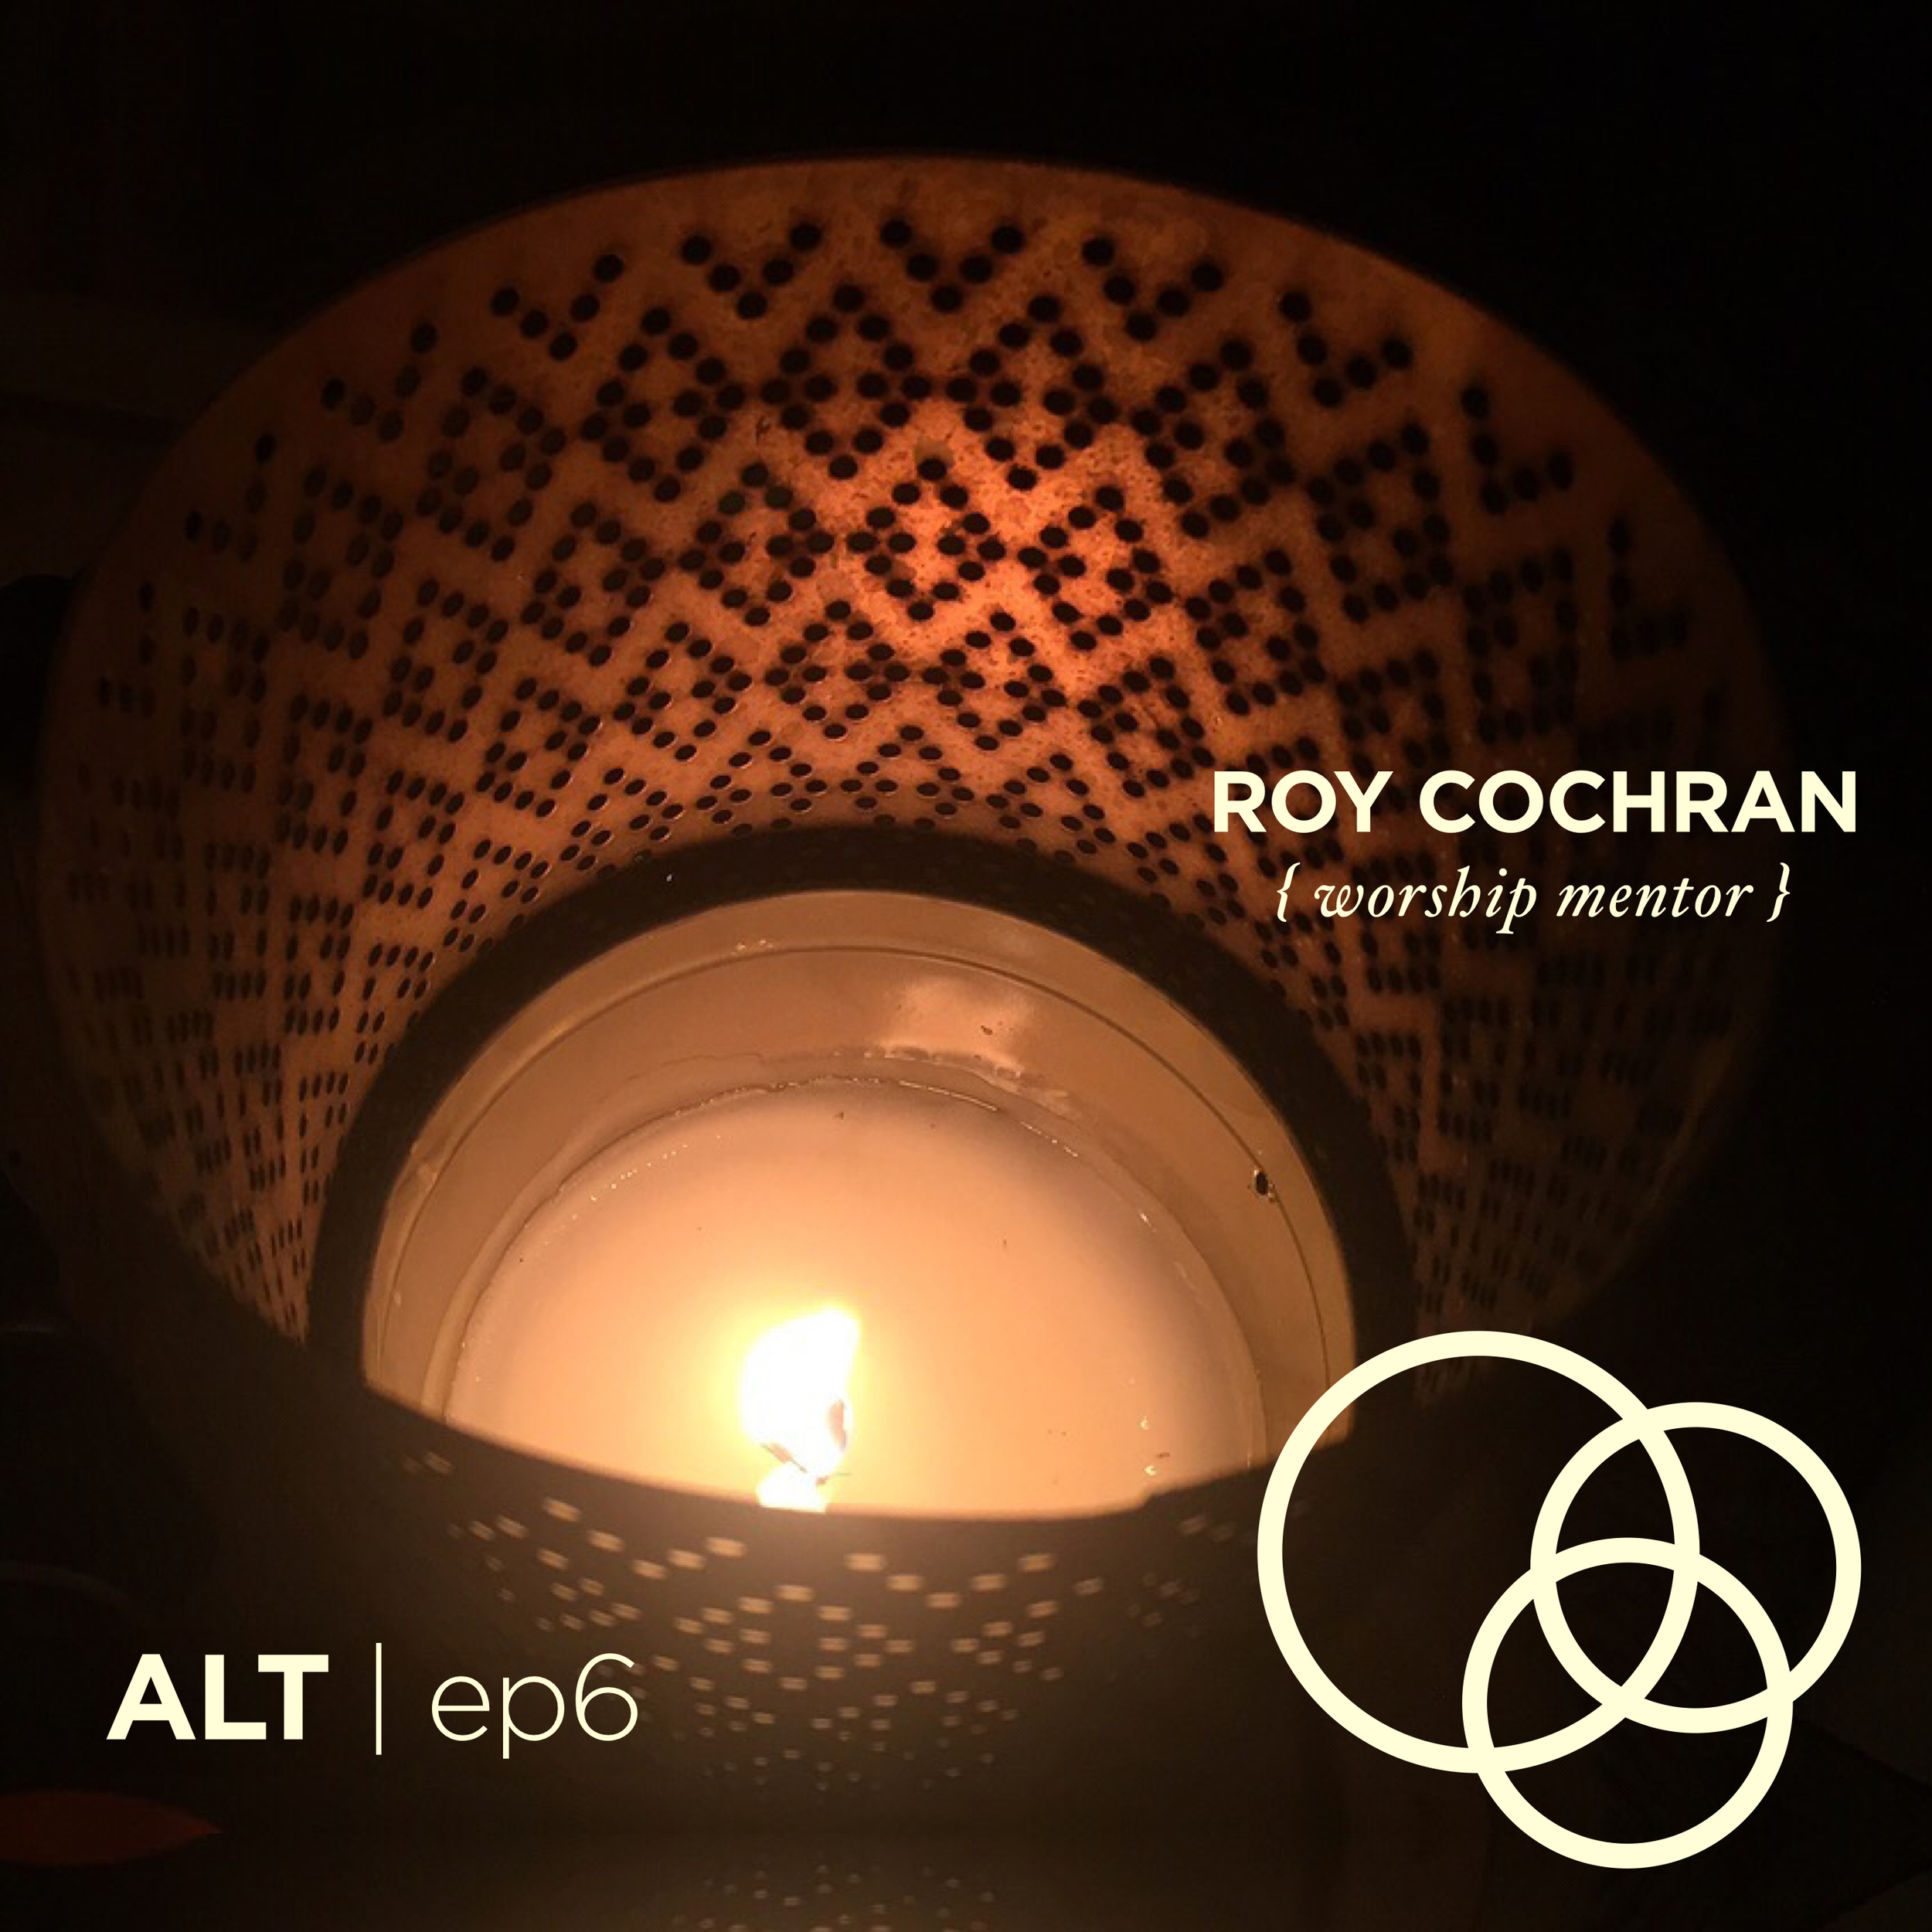 One evening, Stephen Proctor and C.J.Casciotta invited me to join them on their  PodCast ALT (Art Liturgy & Technology)  that we recorded on CJ's back porch. Always an honor to spend time with these two world changers.